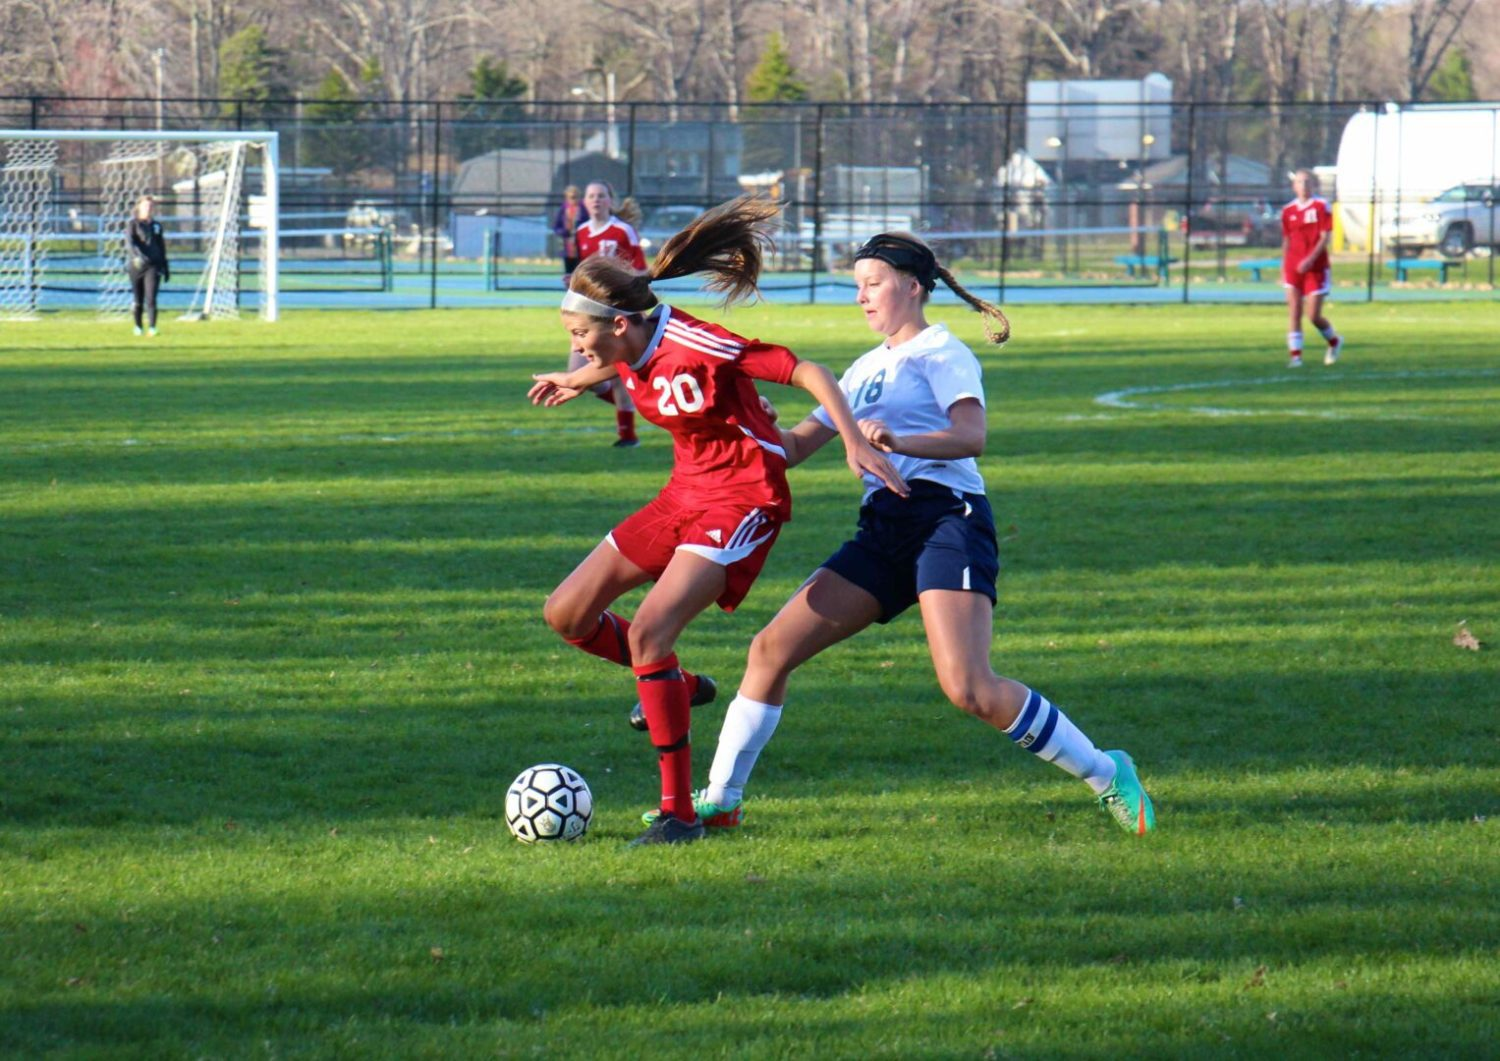 Peel scores twice as Spring Lake defeats Fruitport 3-2 in soccer, remains unbeaten in the league [VIDEO]